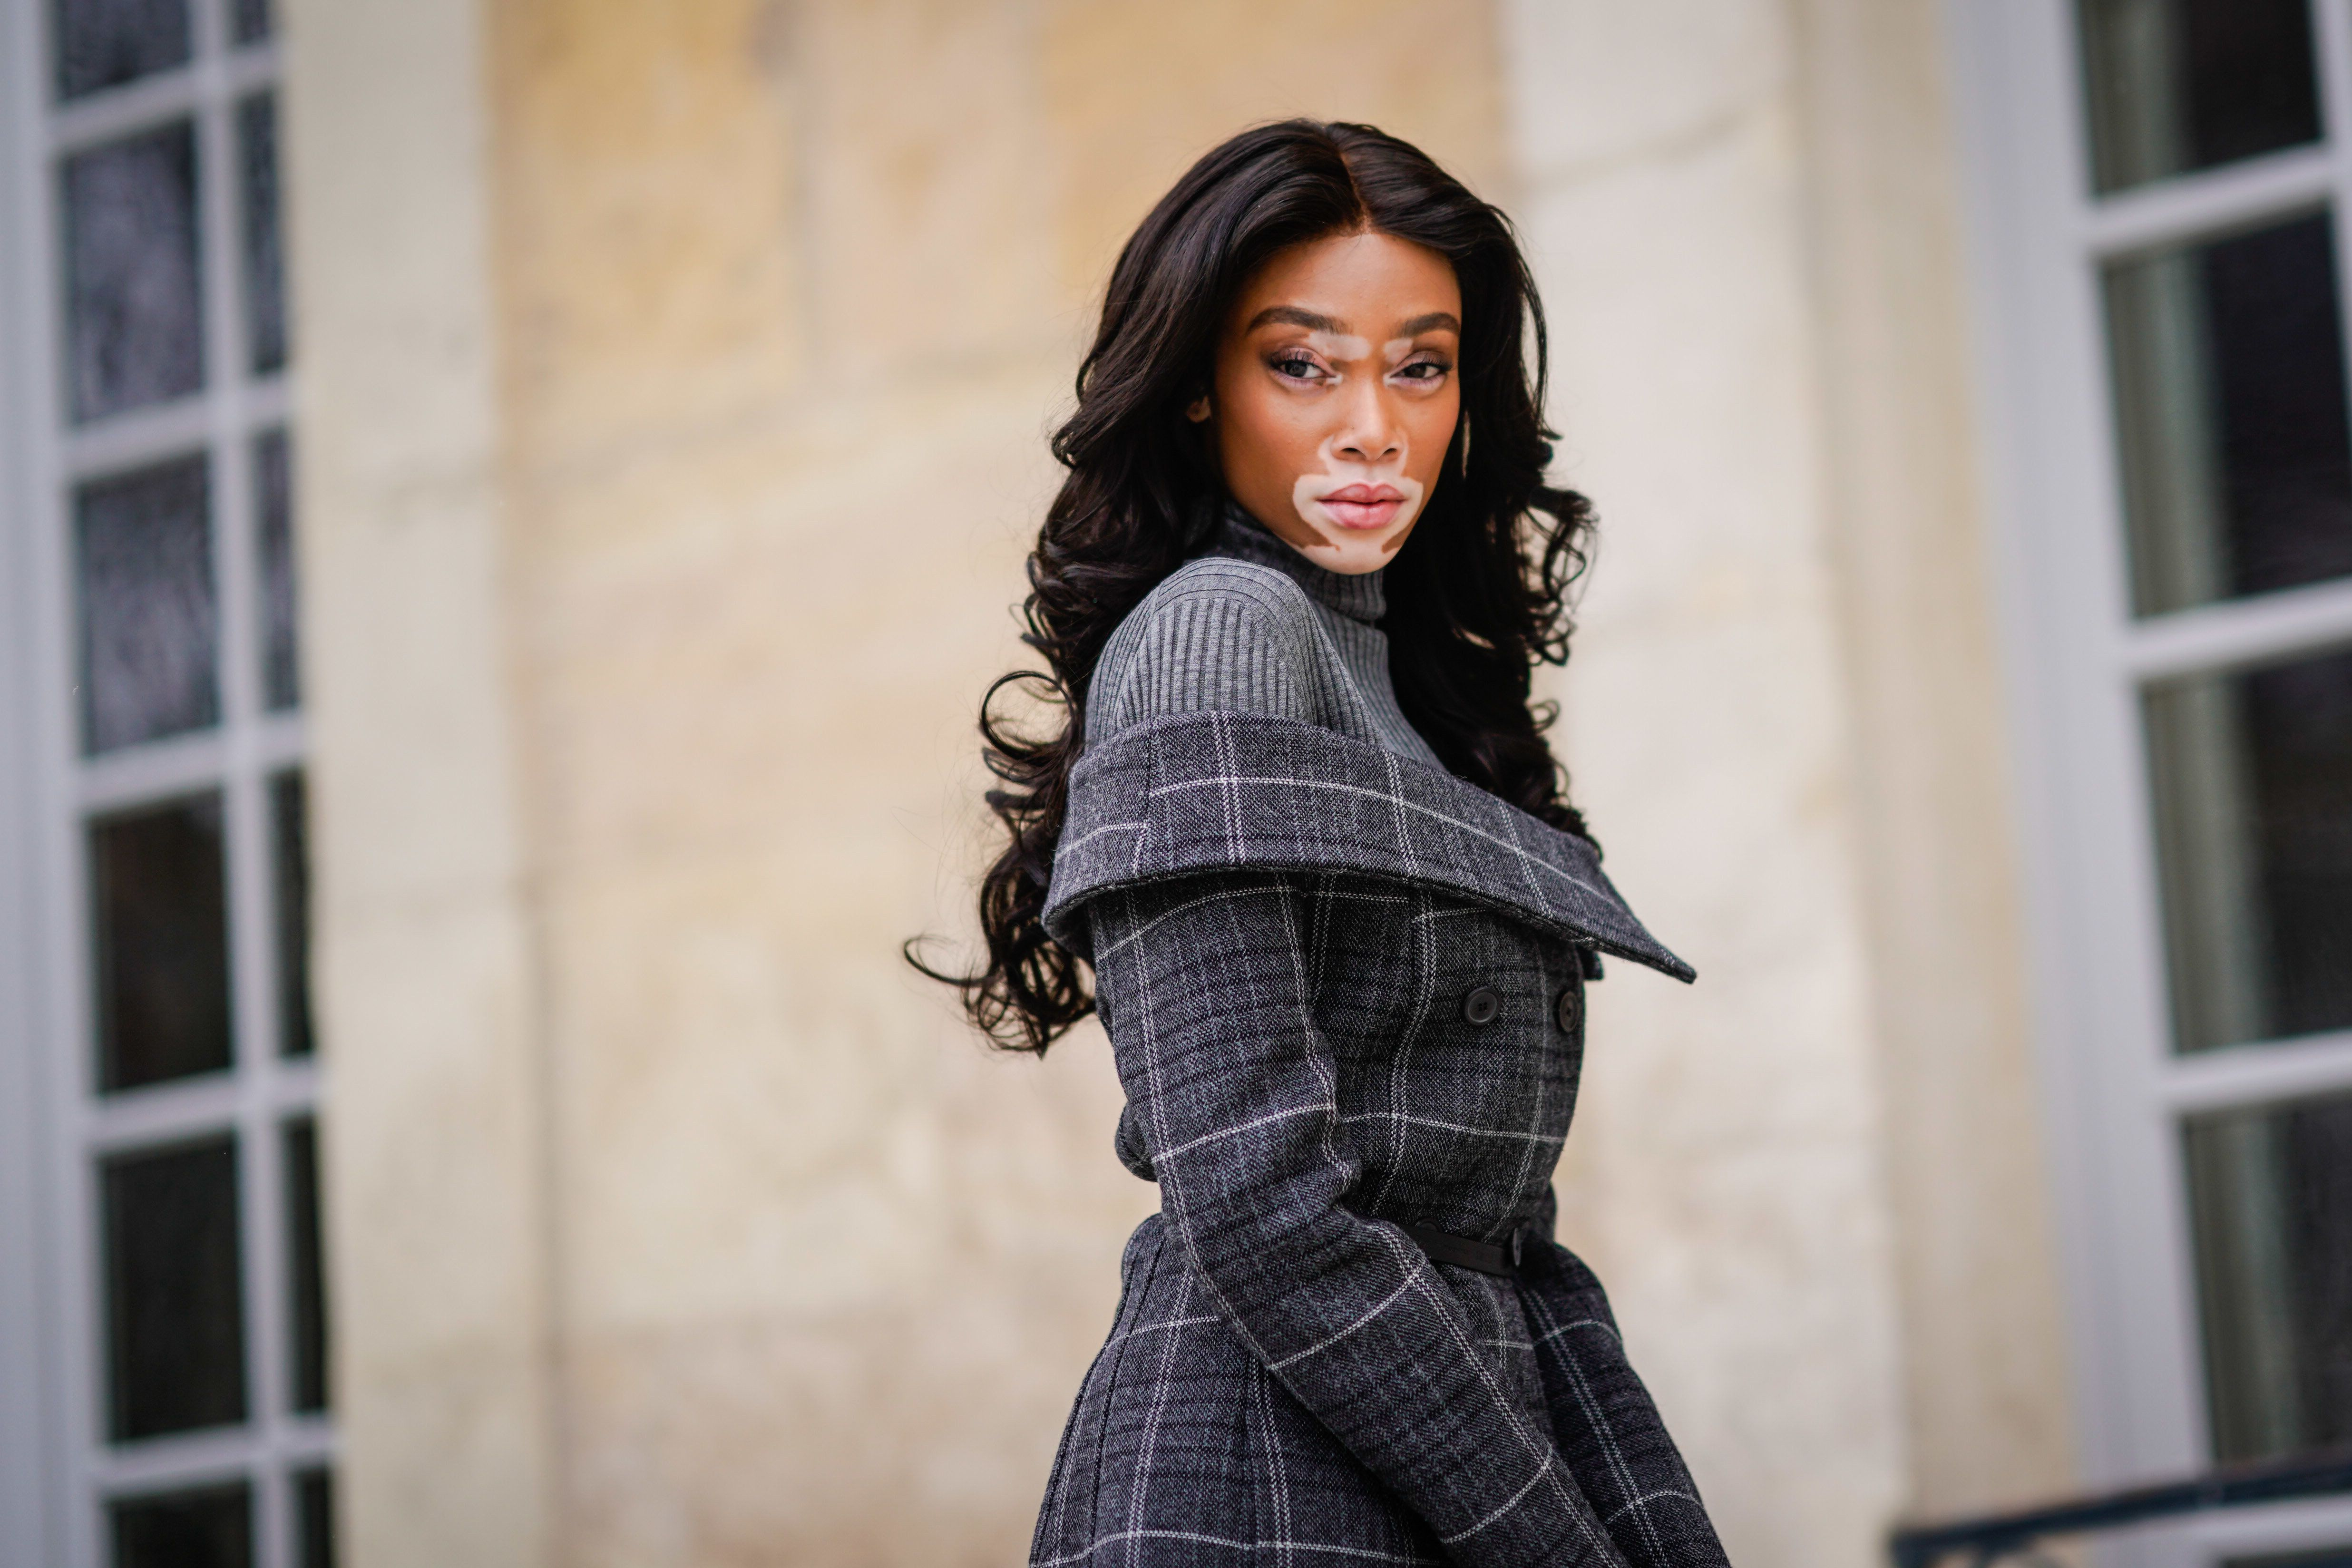 Winnie Harlow poses during Paris Fashion Week on Feb. 27, 2018.